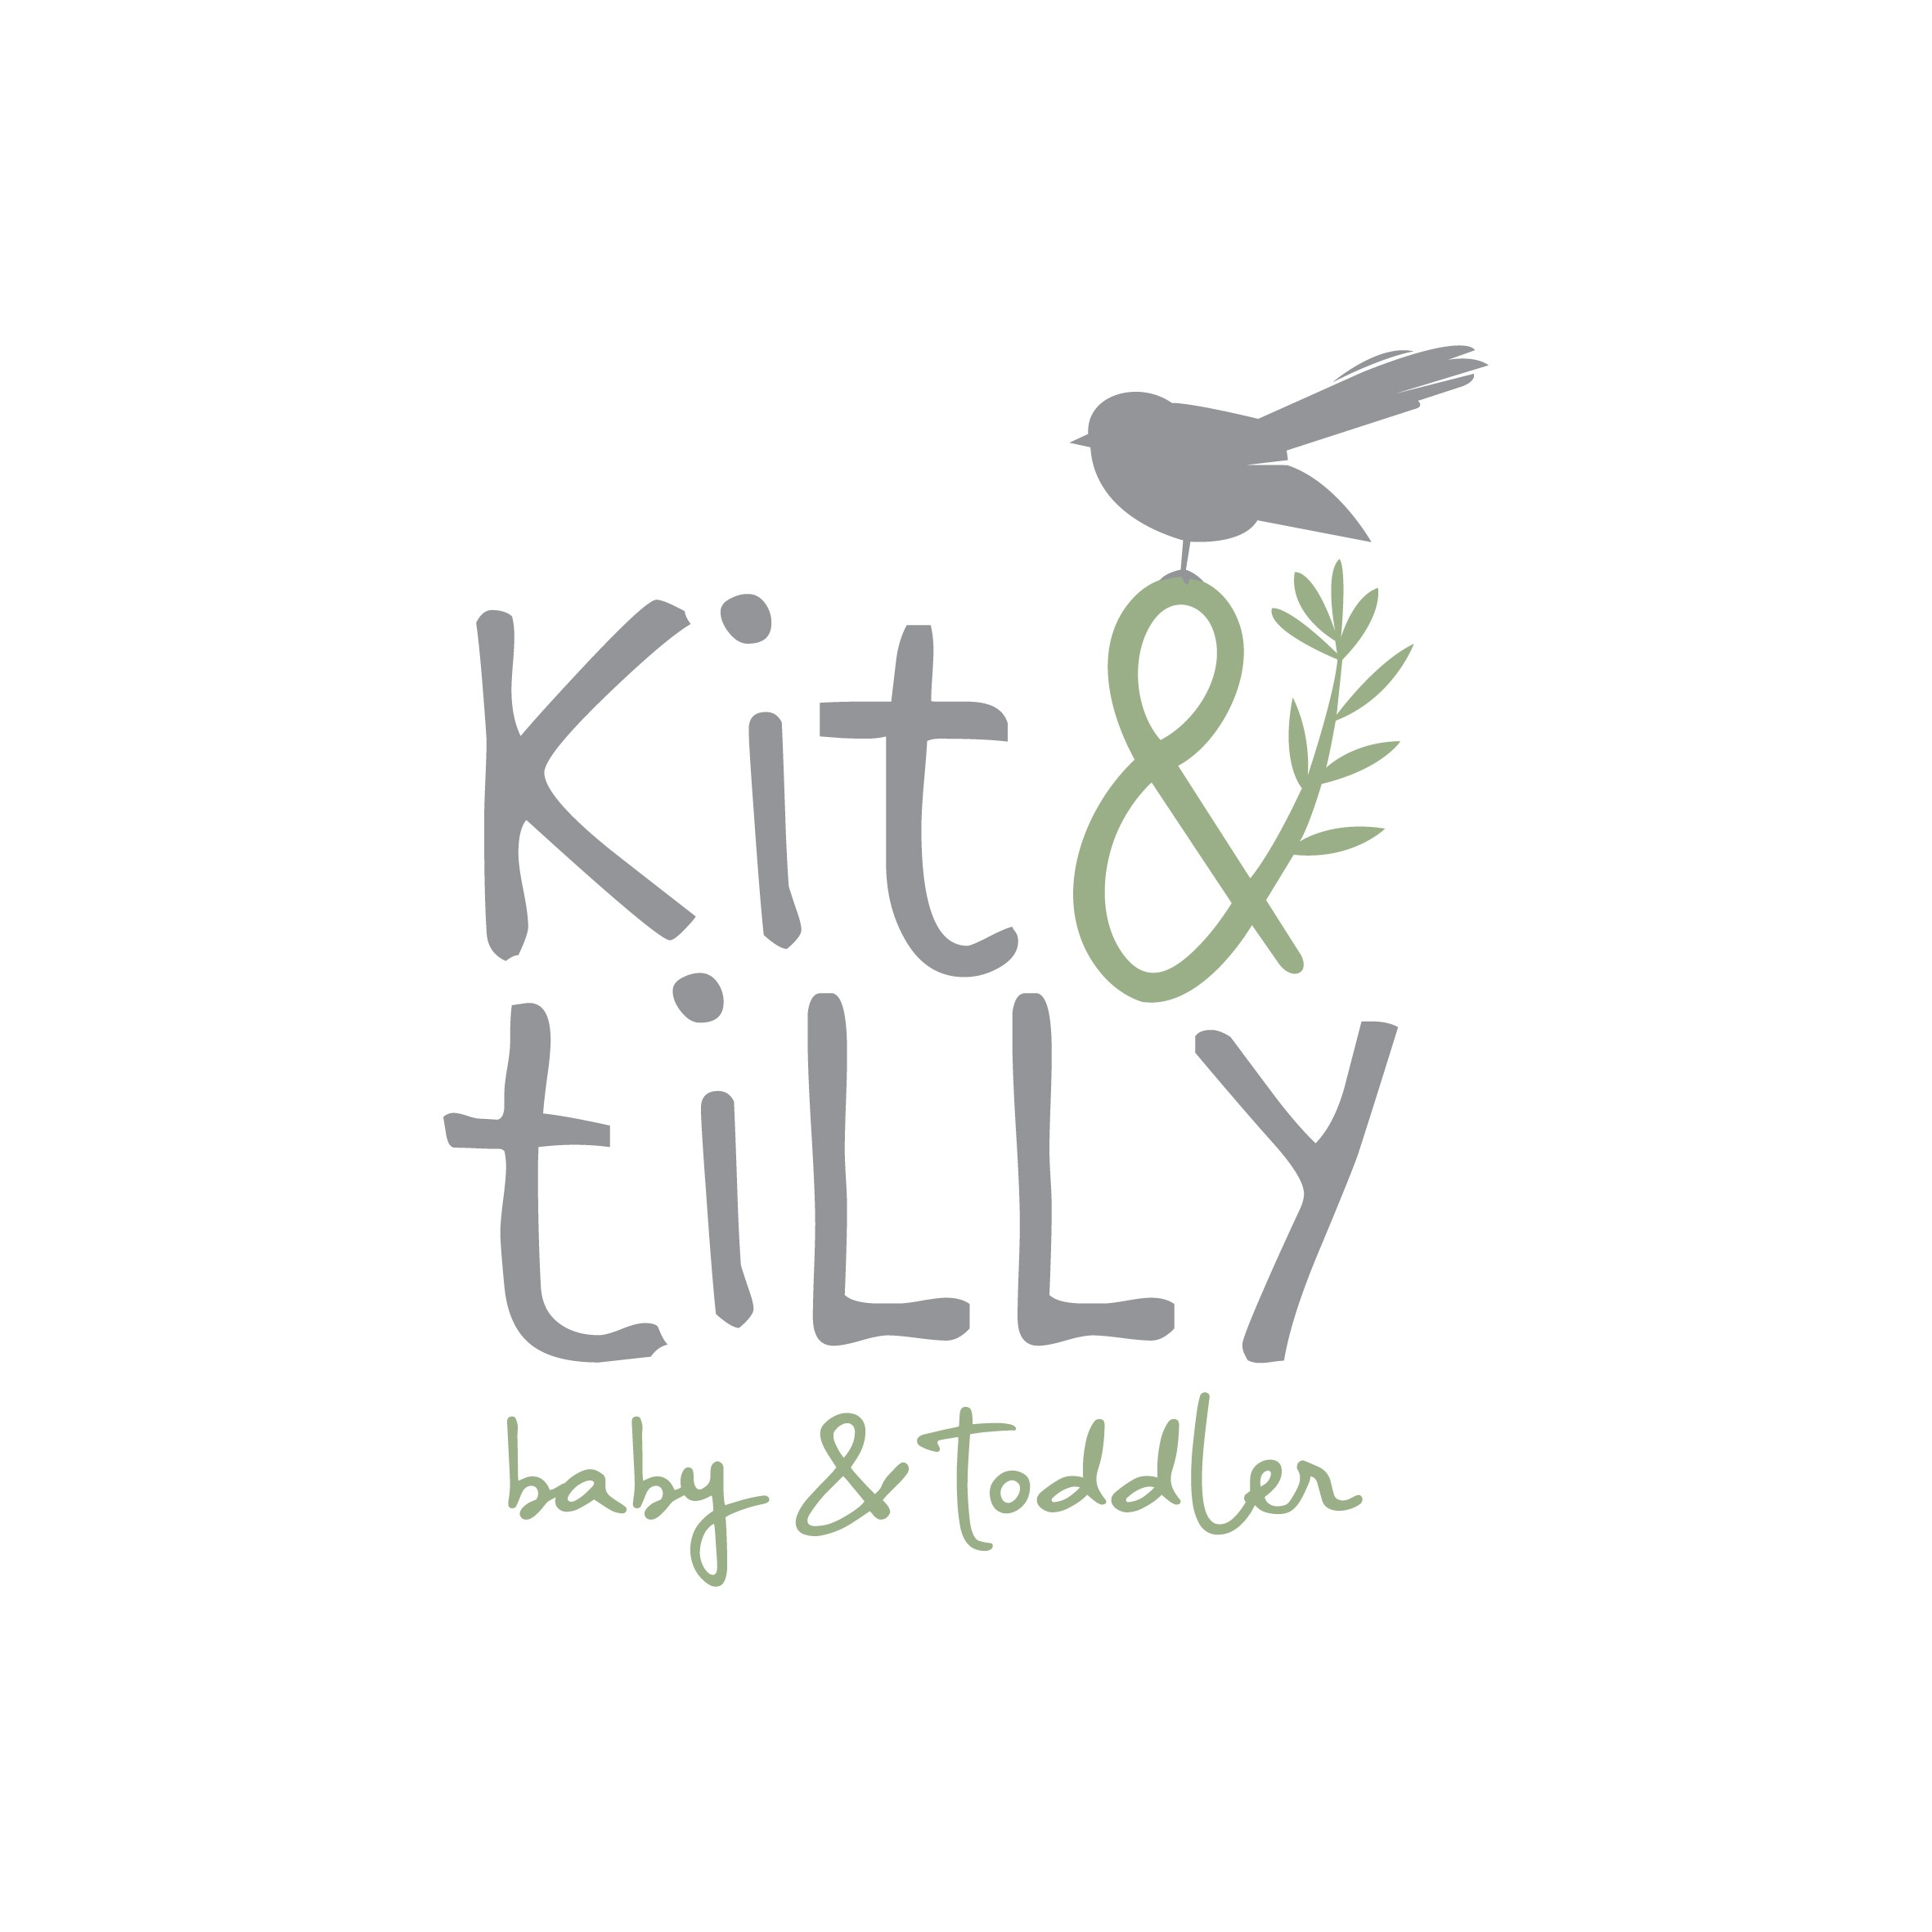 Hip, trendy & a little upmarket themed logo required for a hip & trendy baby textile brand.